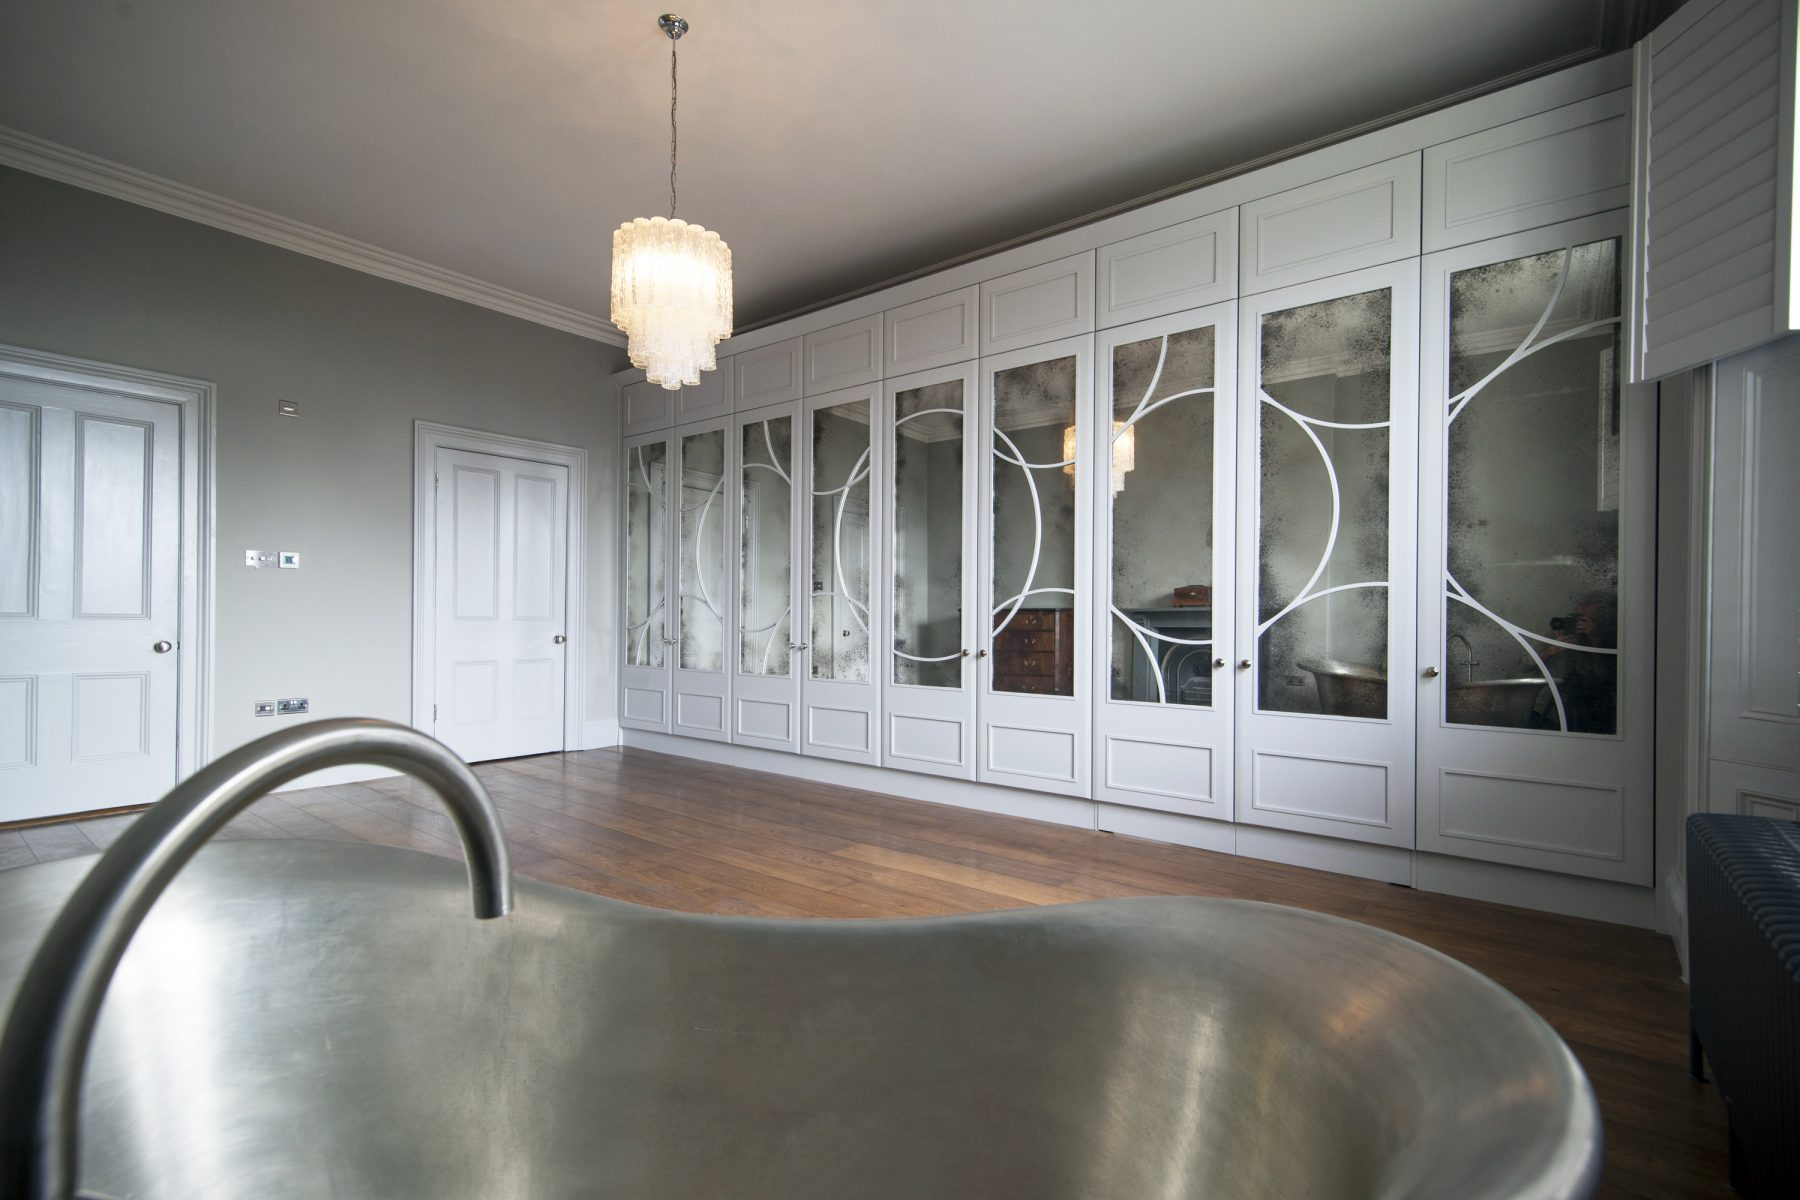 White art deco inspired wardrobes with stainless steel bath